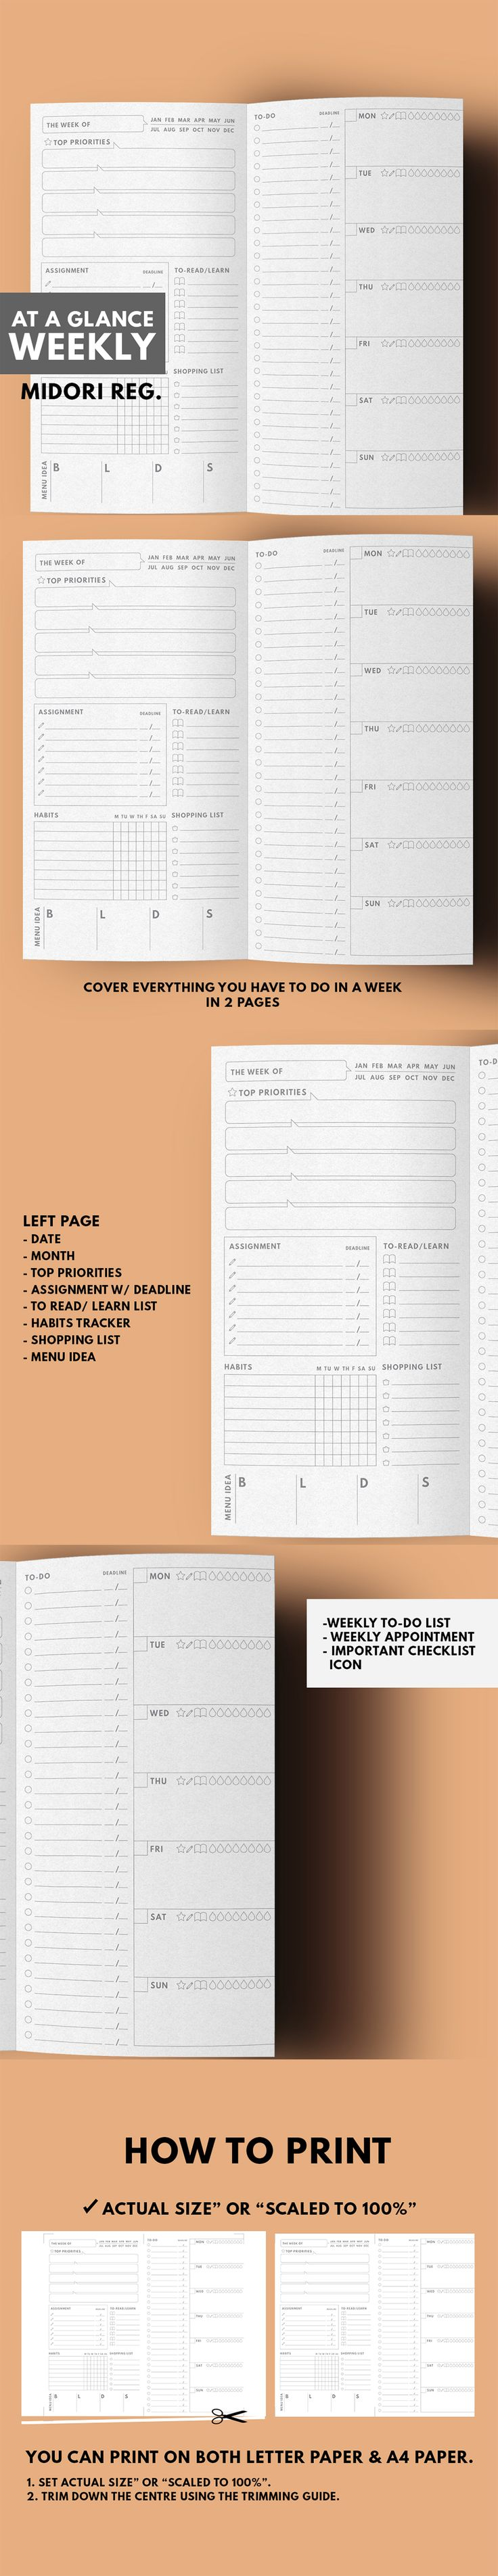 At A Glance Weekly Planner in minimal layout This 2 Weekly Planner are contain all list / space for everything you need to get thing done in 1 week